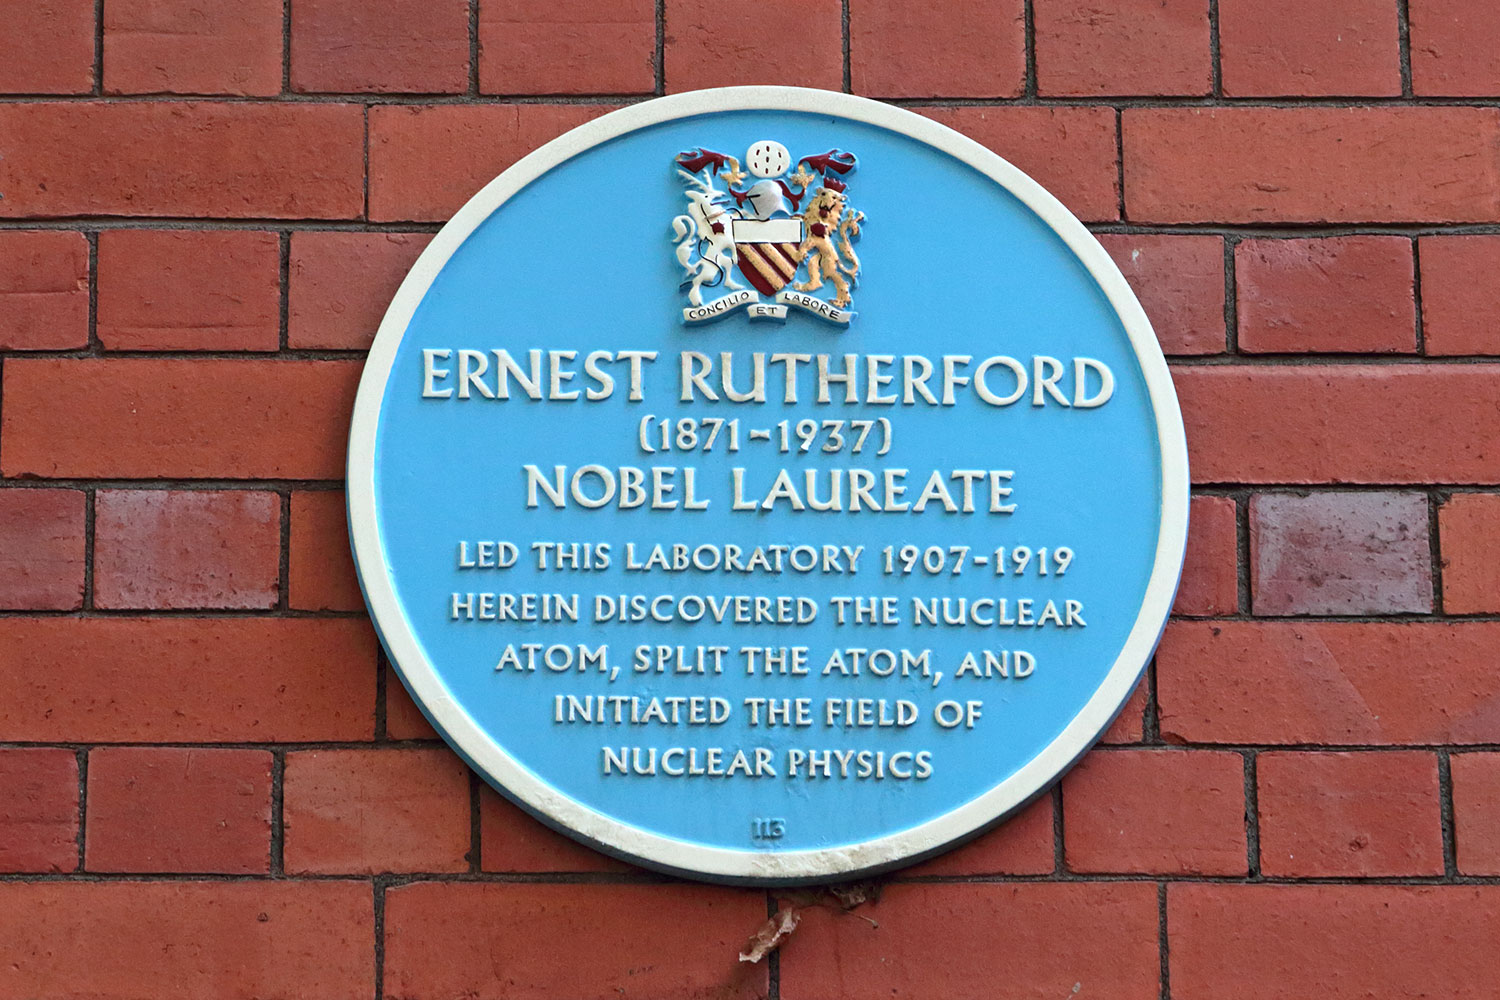 Ernest Rutherford blue plaque in Manchester